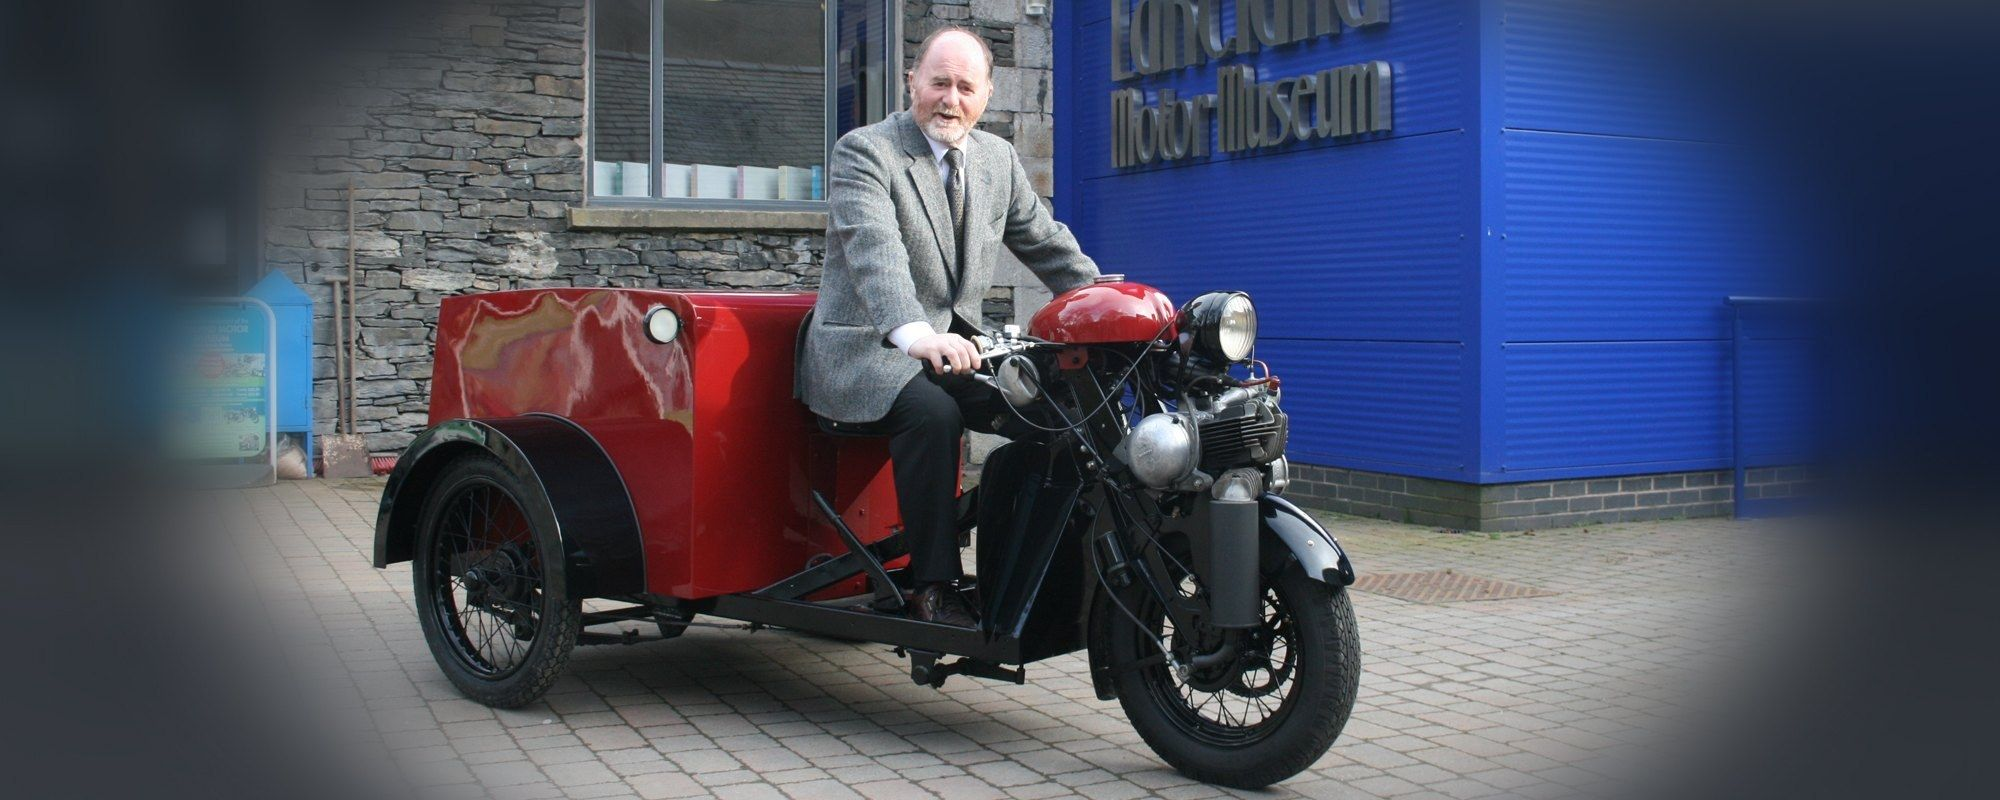 Our museum chairman Bill Bewley on the tri-van